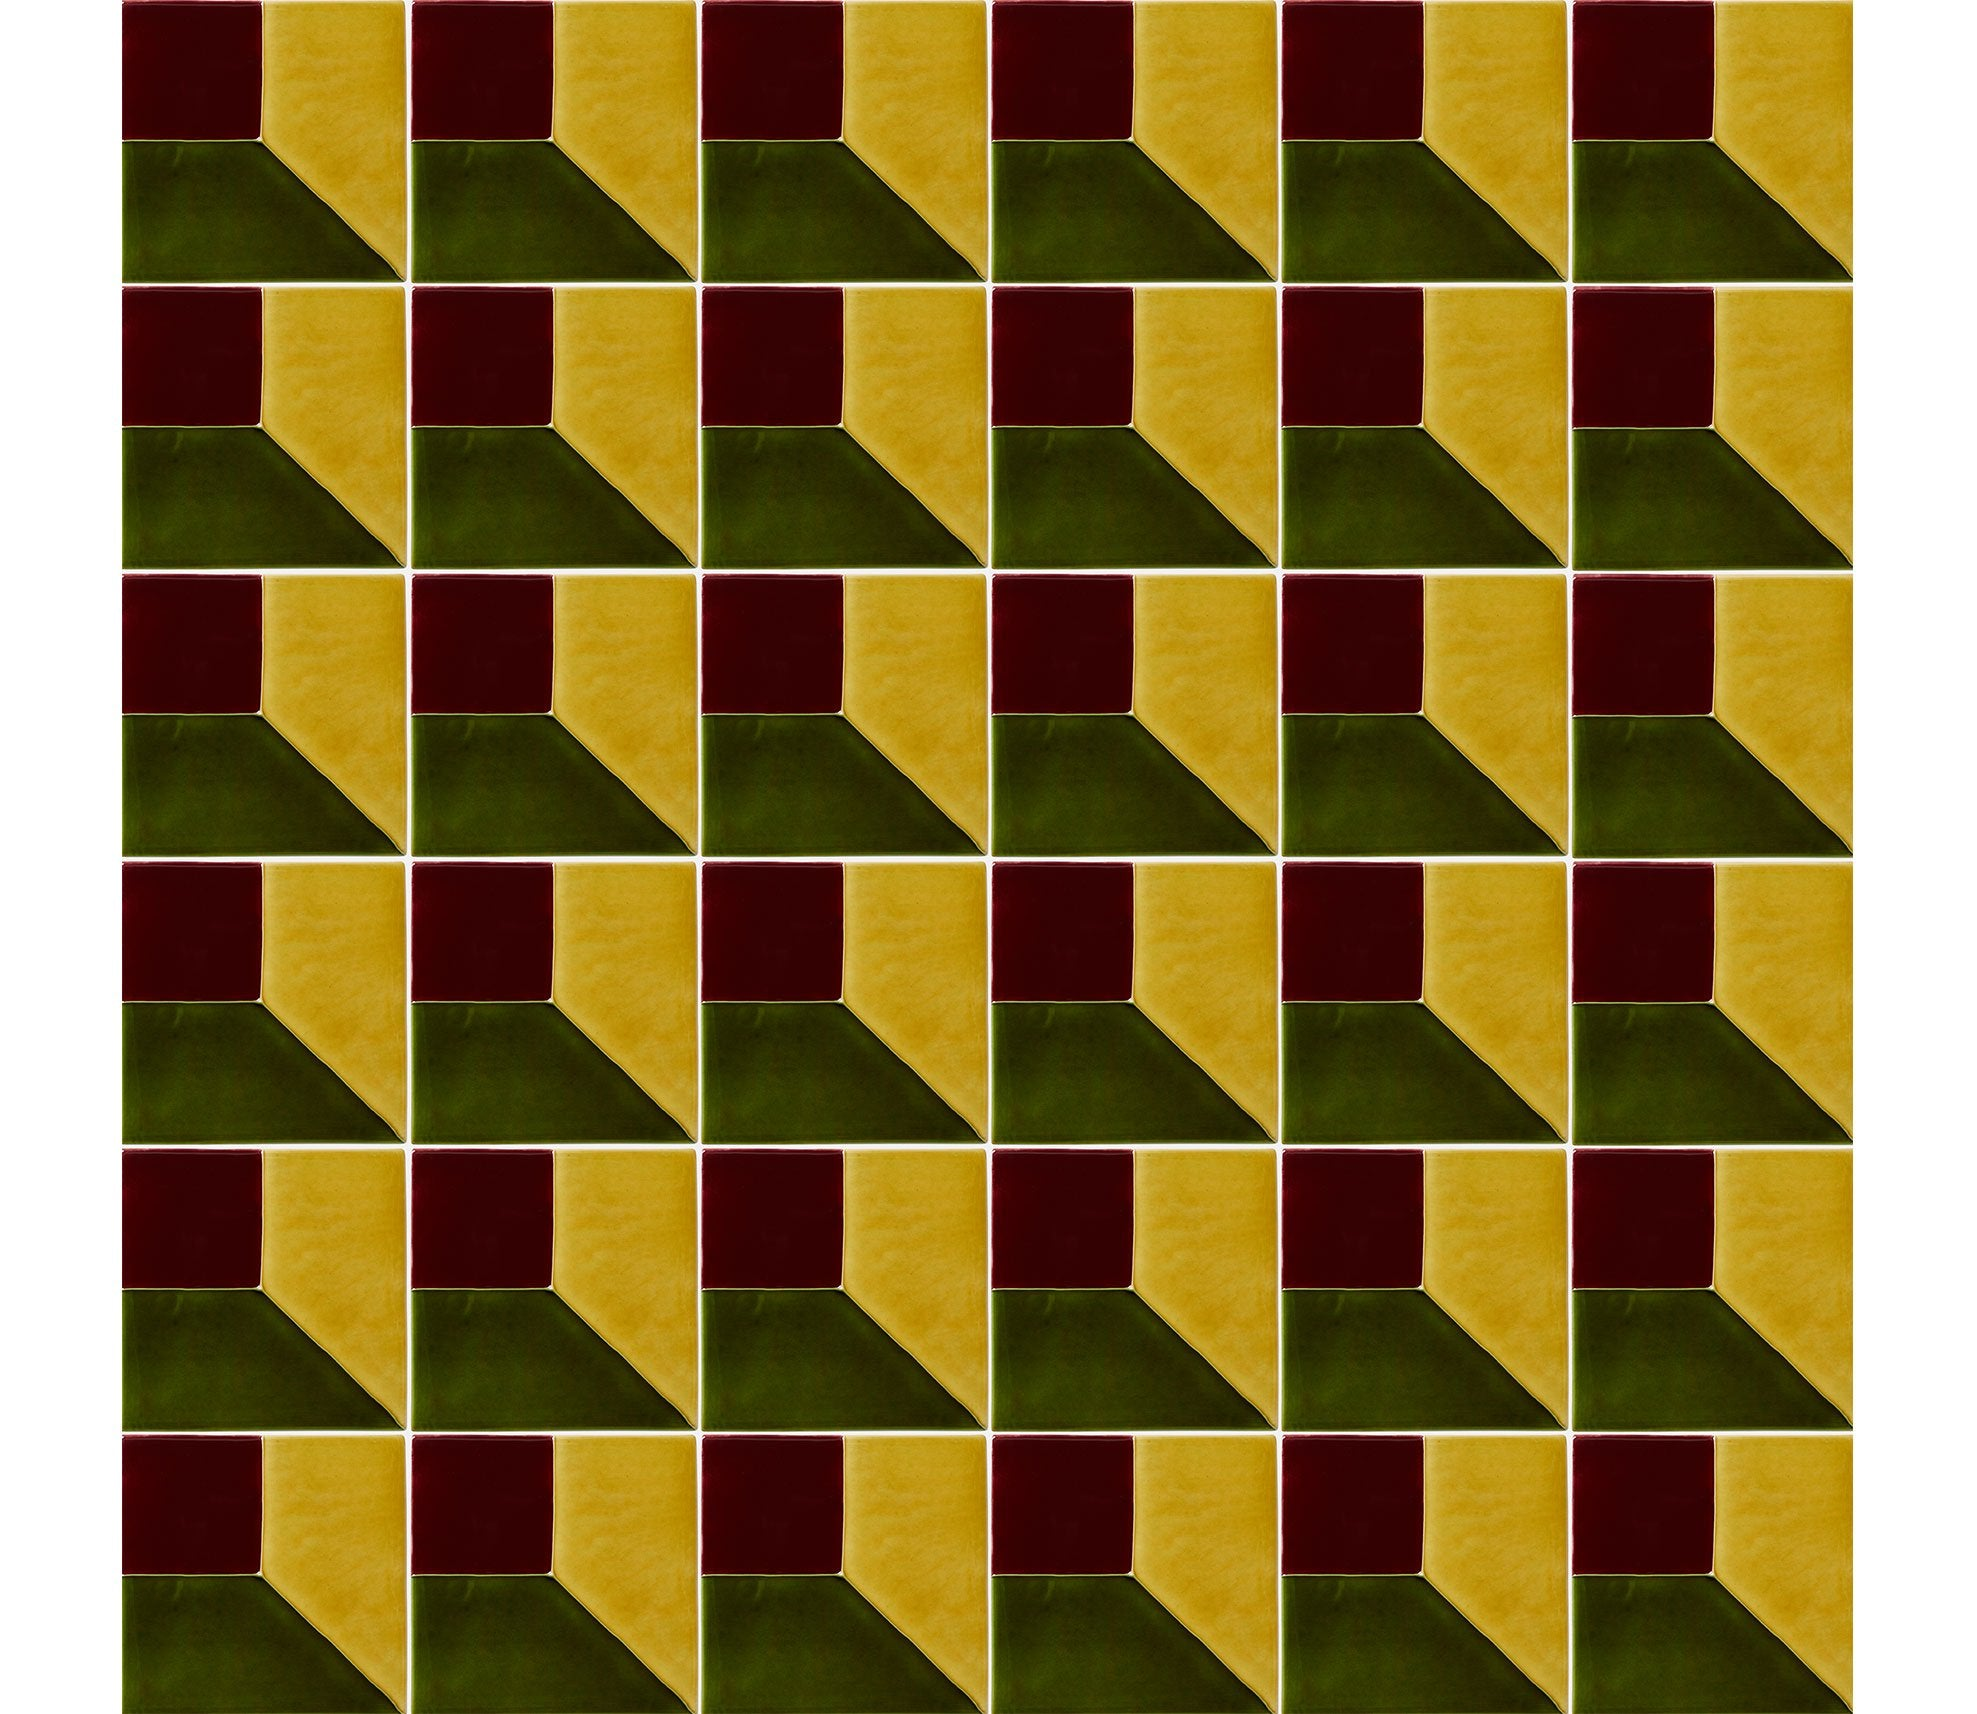 Hanley Tube Lined Decorative Tiles Product Image 48